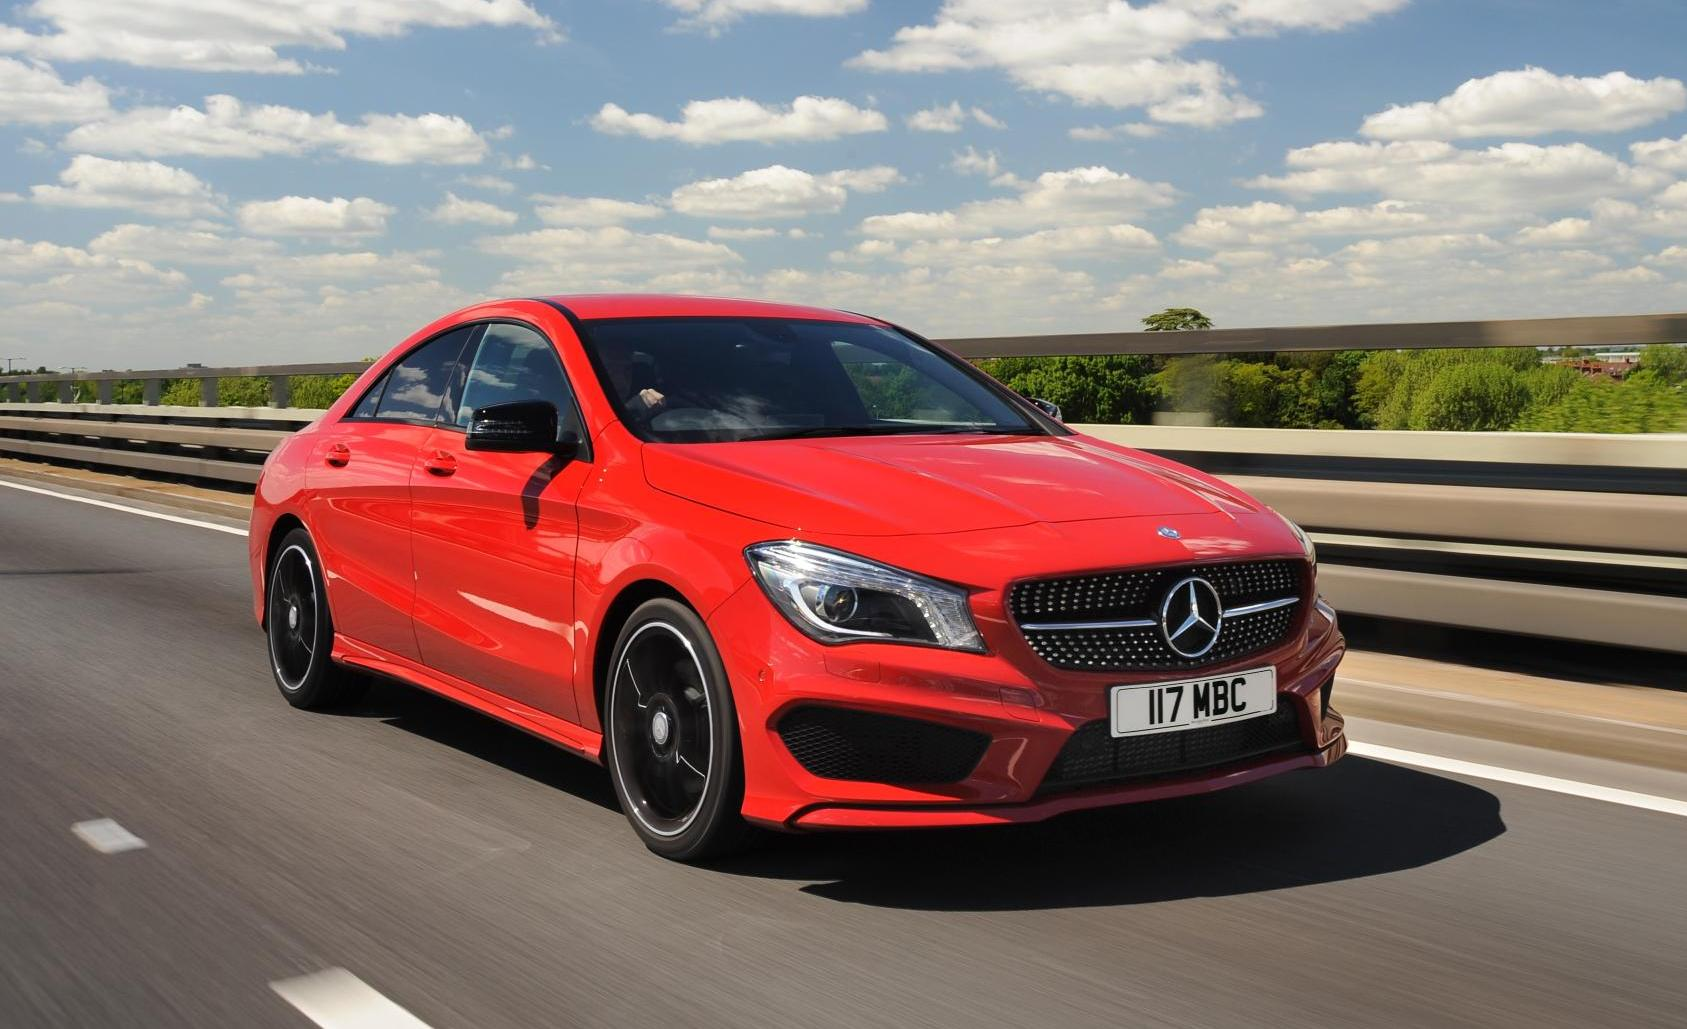 Mercedes Benz Cla Class India Launch Within 6 Months